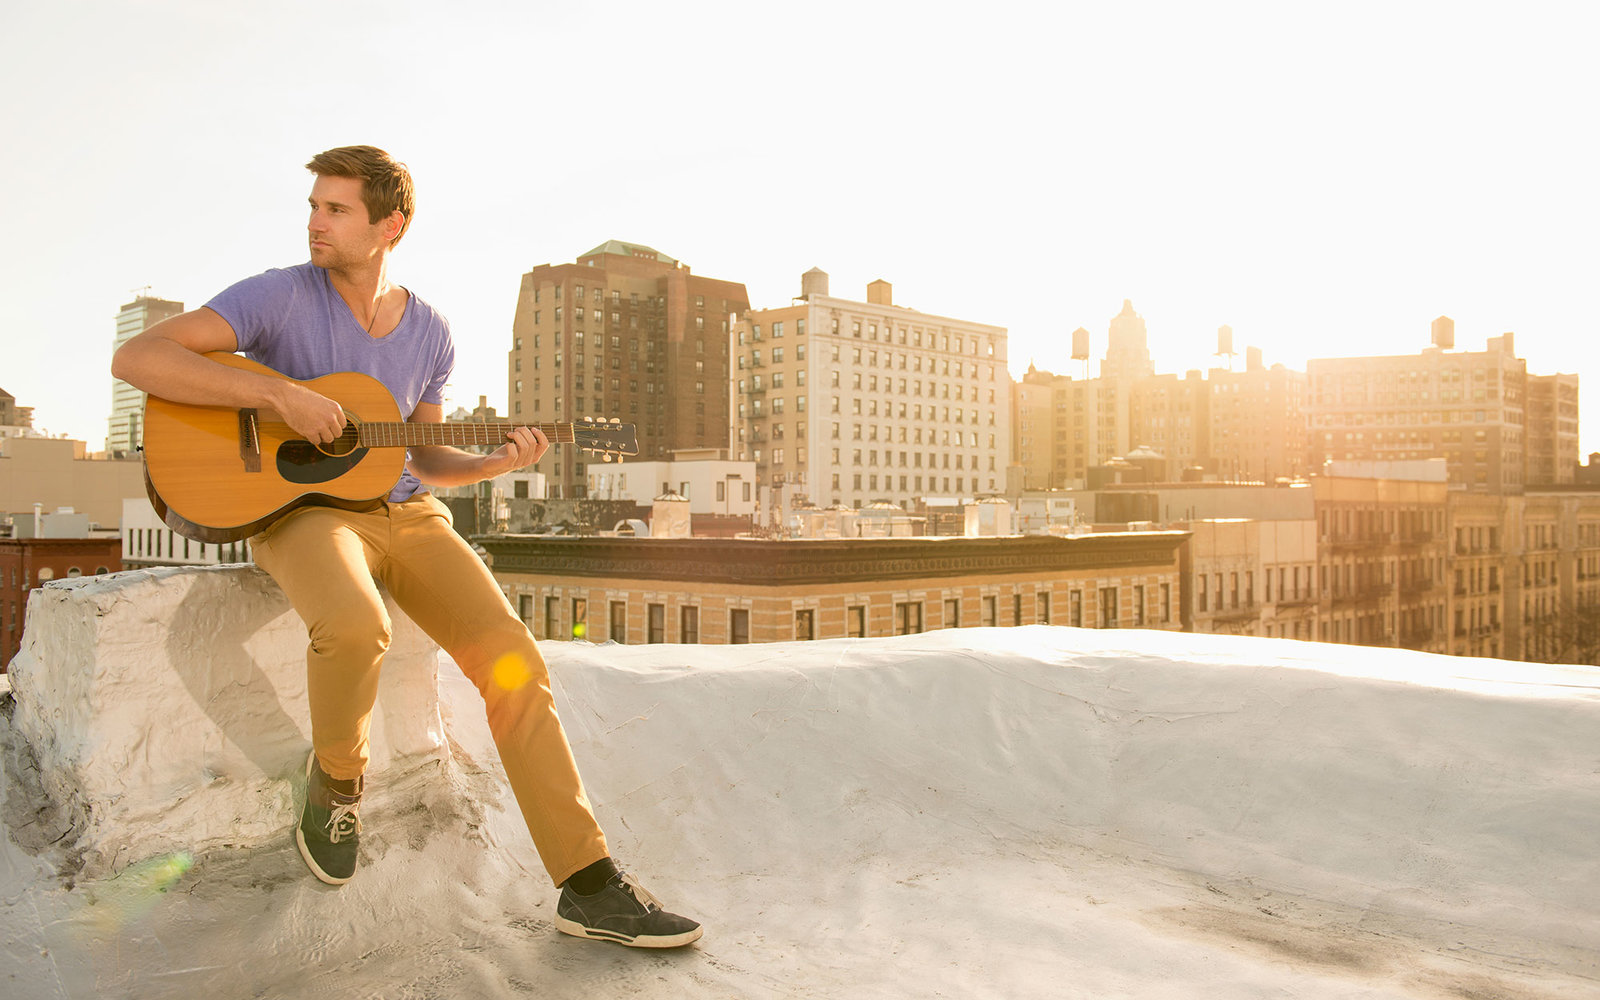 Caucasian man playing guitar on urban rooftop